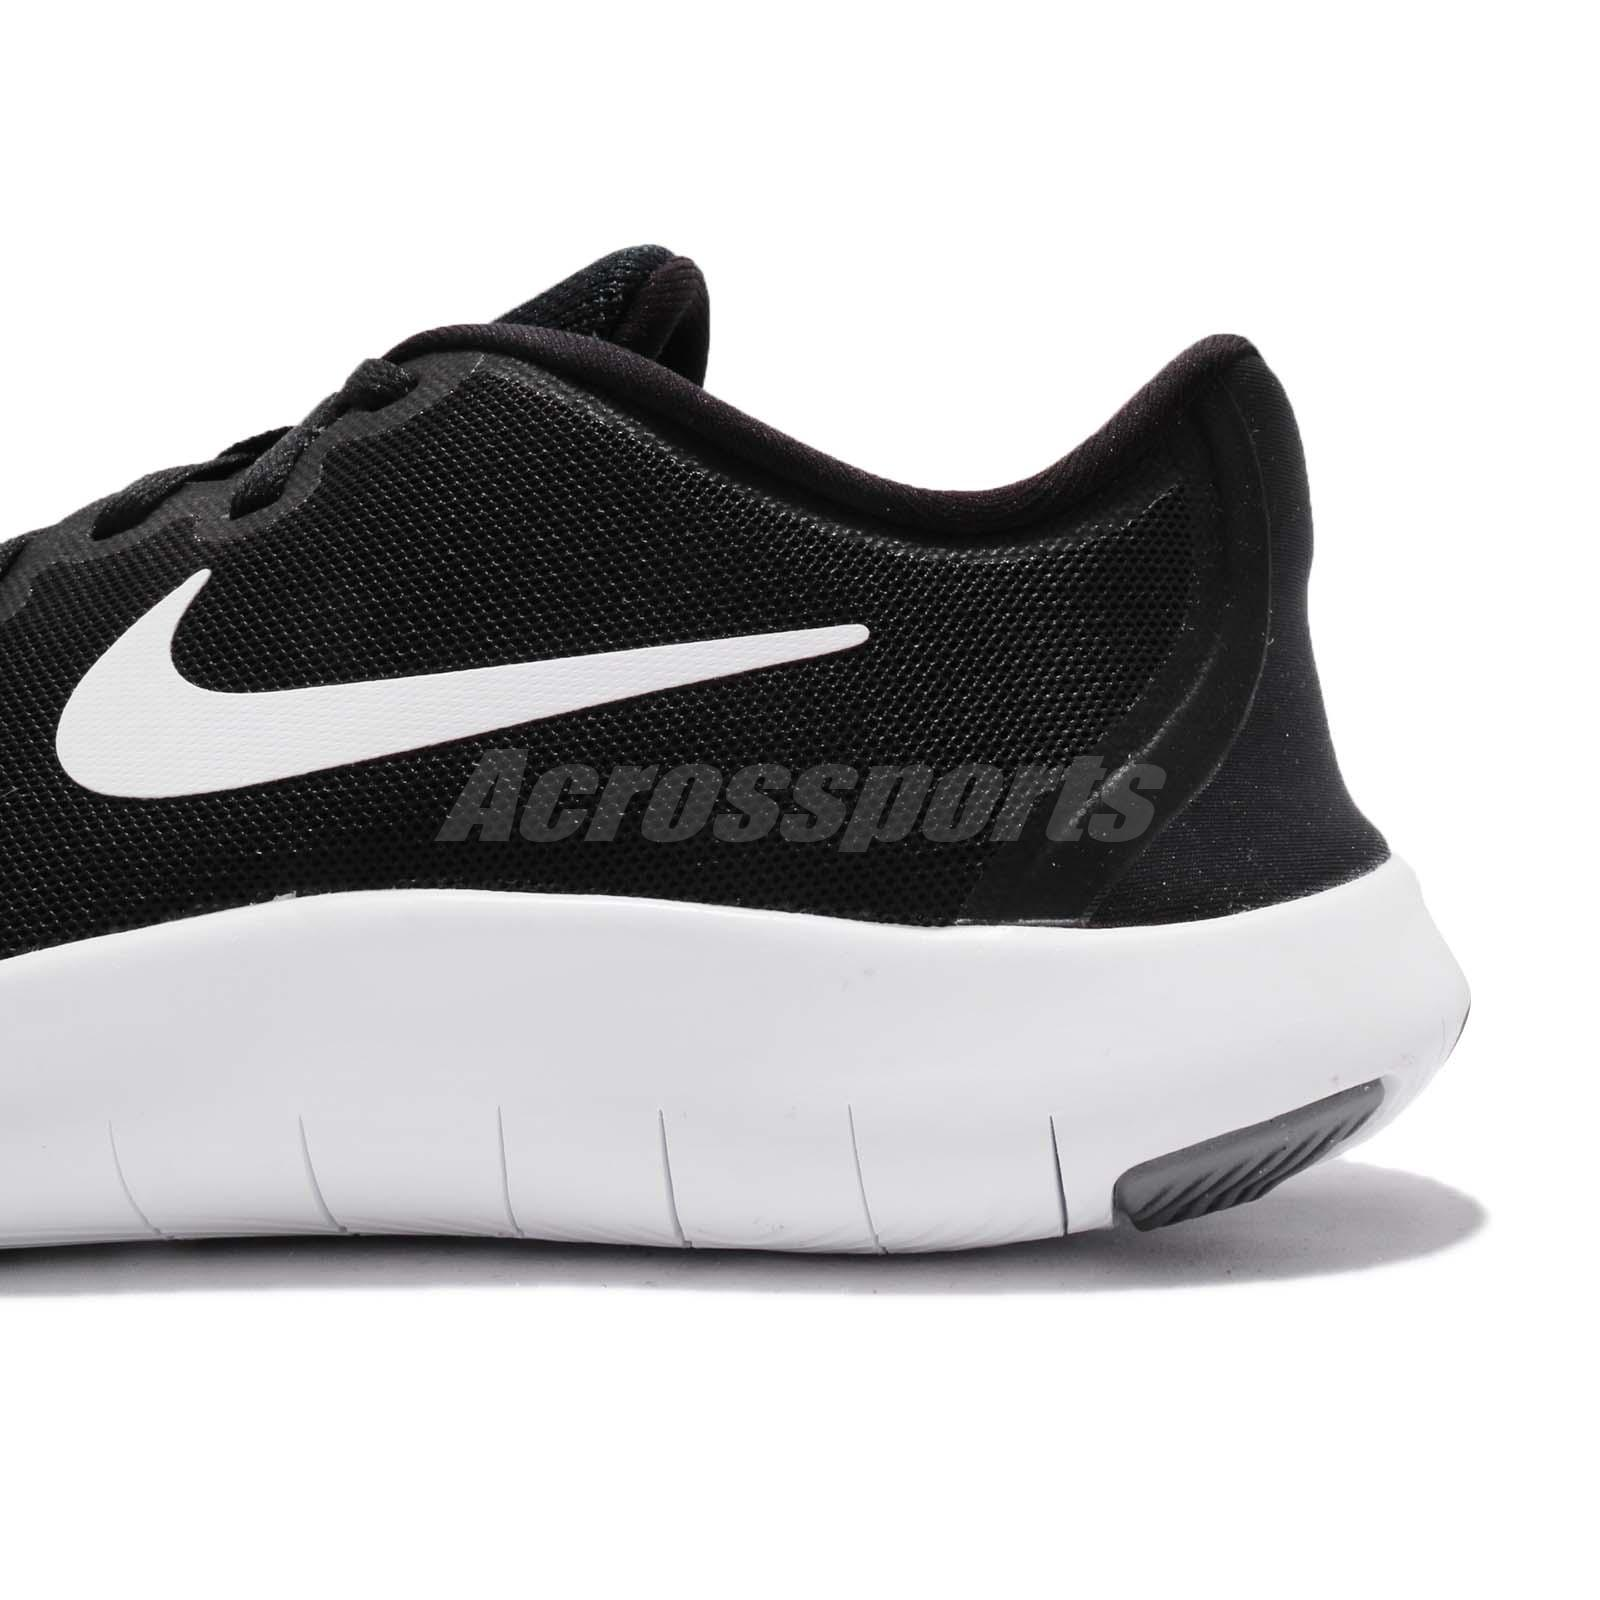 1f7b750d36c24 Nike Flex Contact 2 GS II Black Kids Youth Women Running Shoes ...